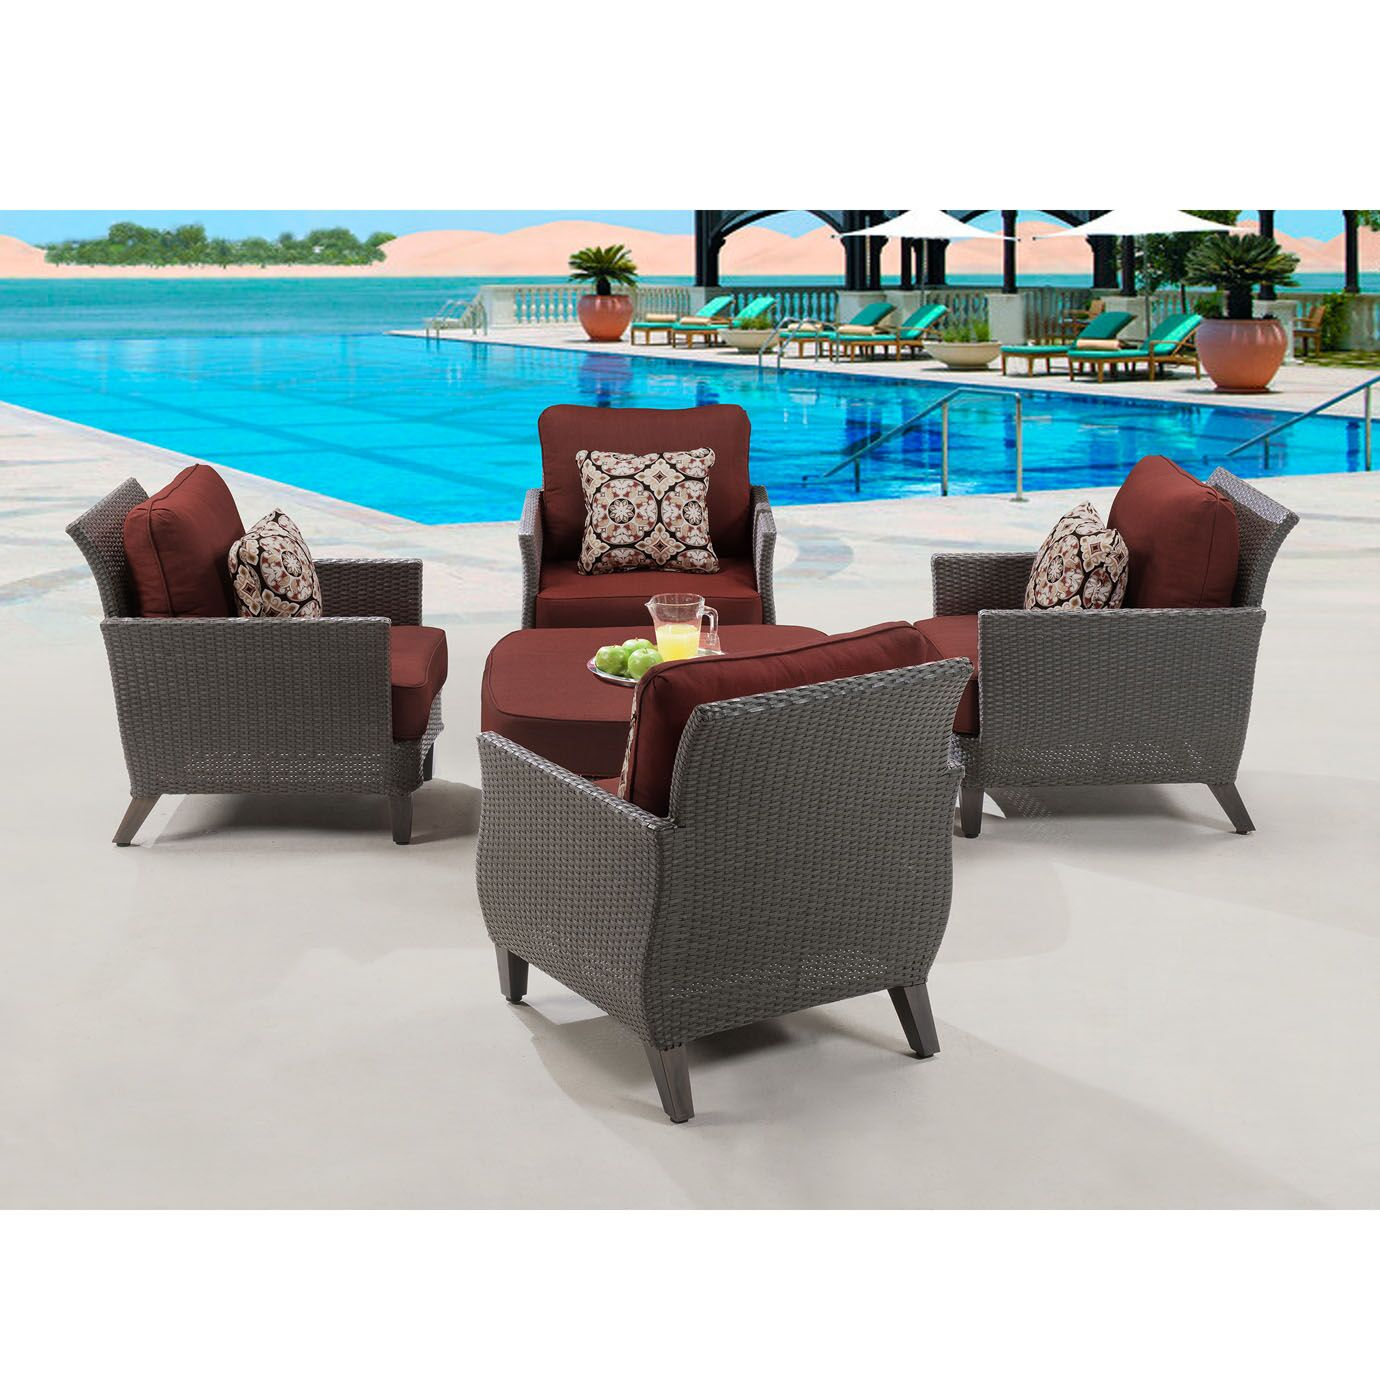 Cowger 5 Piece Conversation Set with Cushions Color: Crimson Red